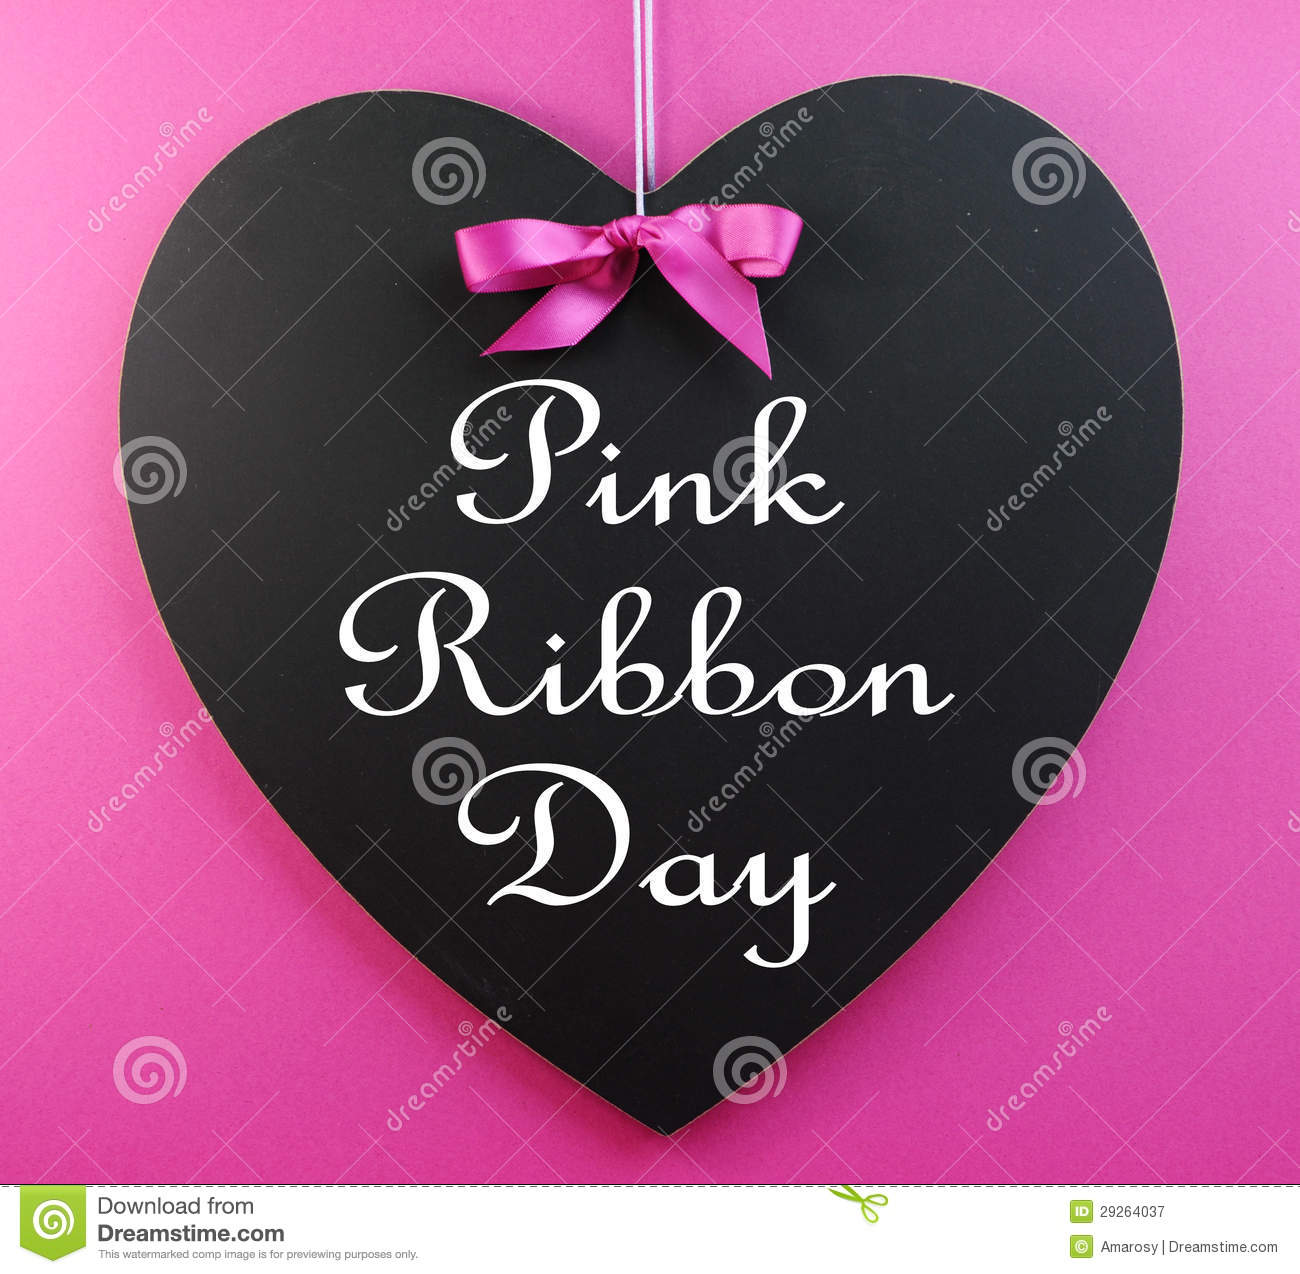 pink ribbon day message written on a heart shape Cancer Ribbon Silhouette Cancer Ribbon SVG